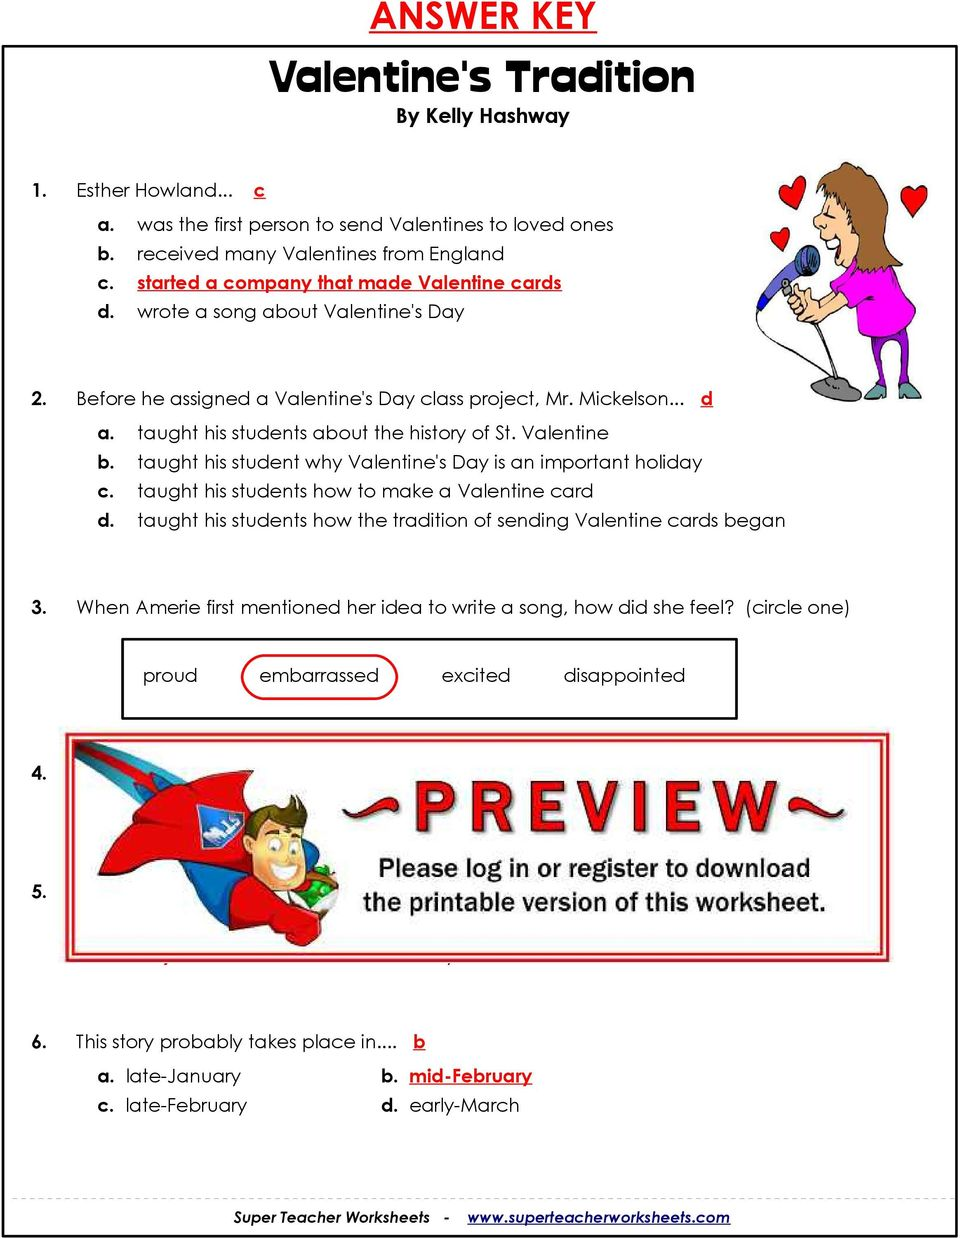 worksheet Because Of Winn Dixie Worksheets valentines tradition by kelly hashway pdf taught his student why day is an important holiday c students how